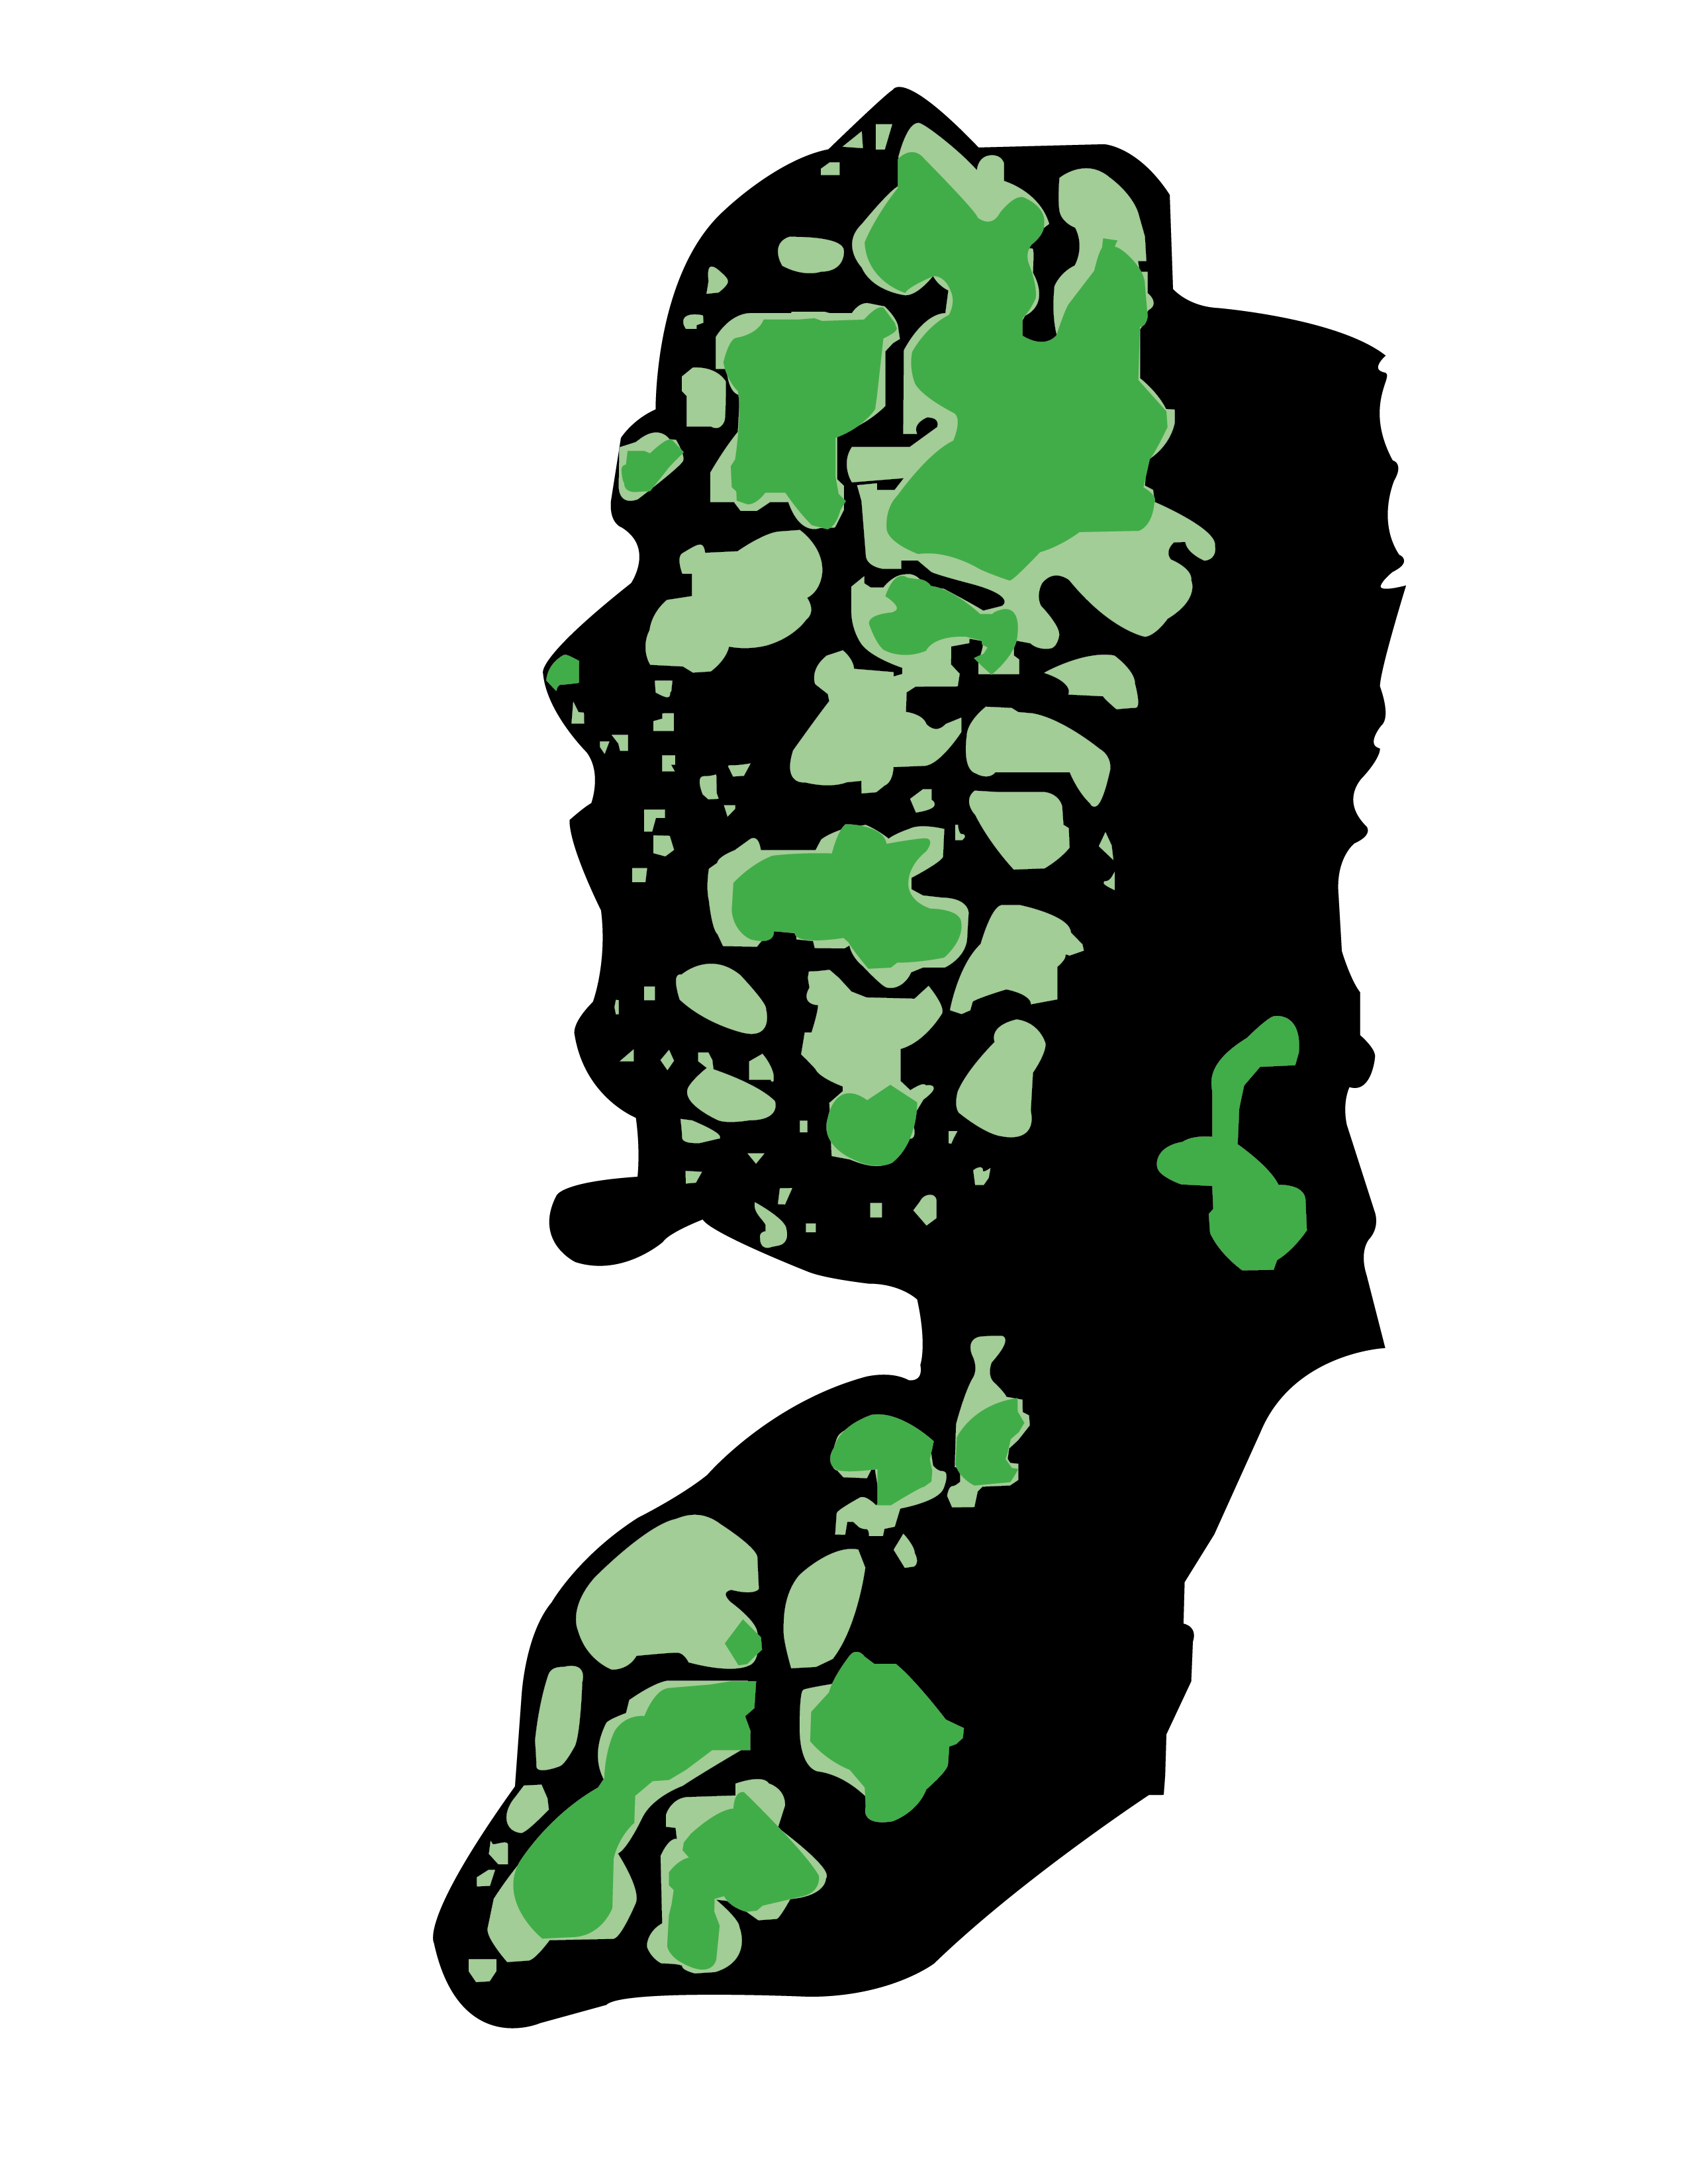 WEST BANK MAP 3